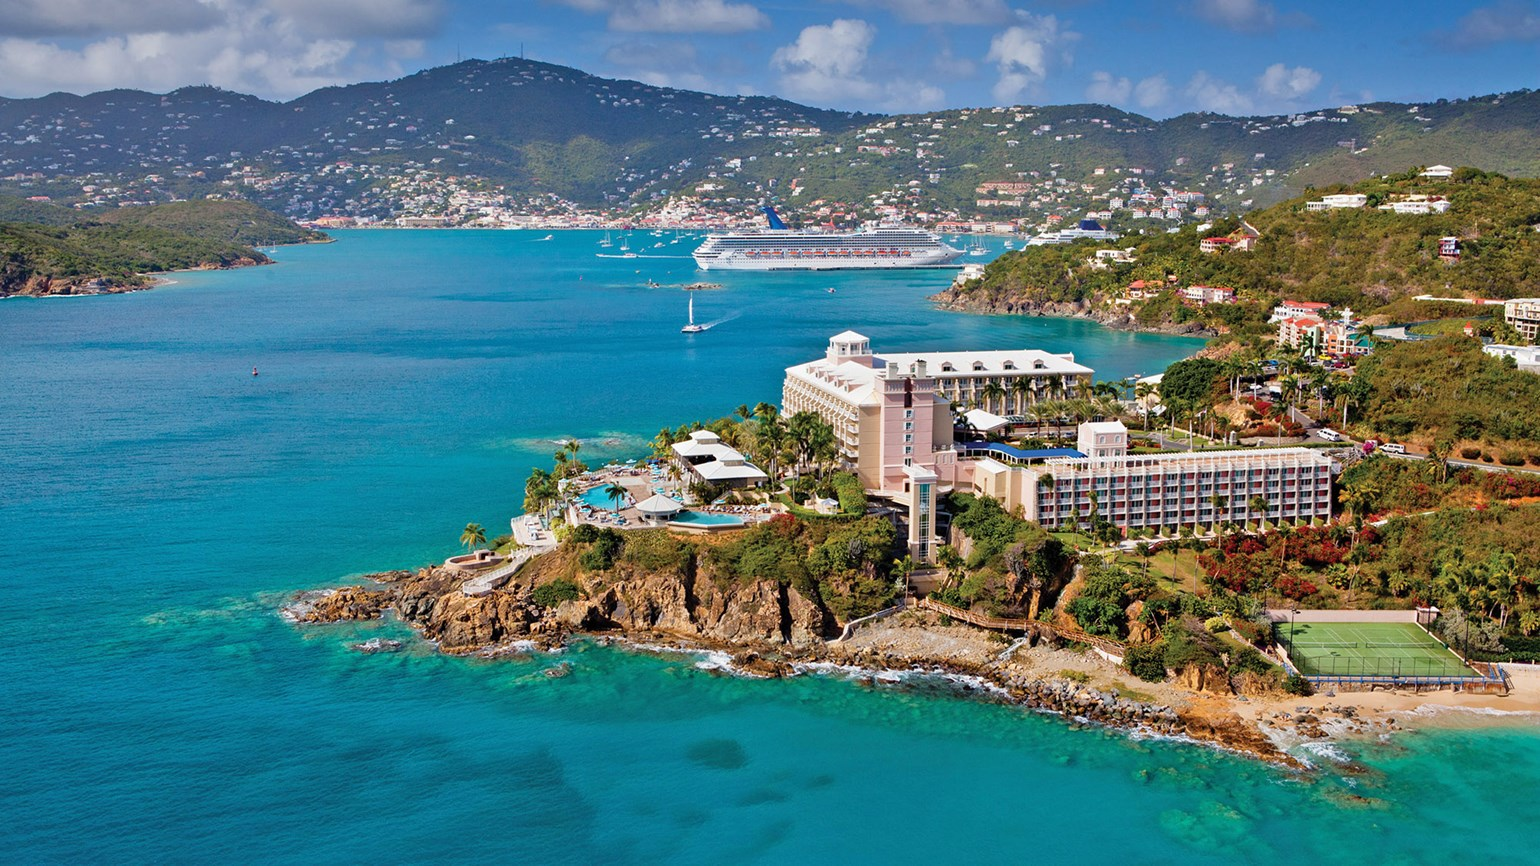 St. Thomas' largest resort won't reopen until 2019